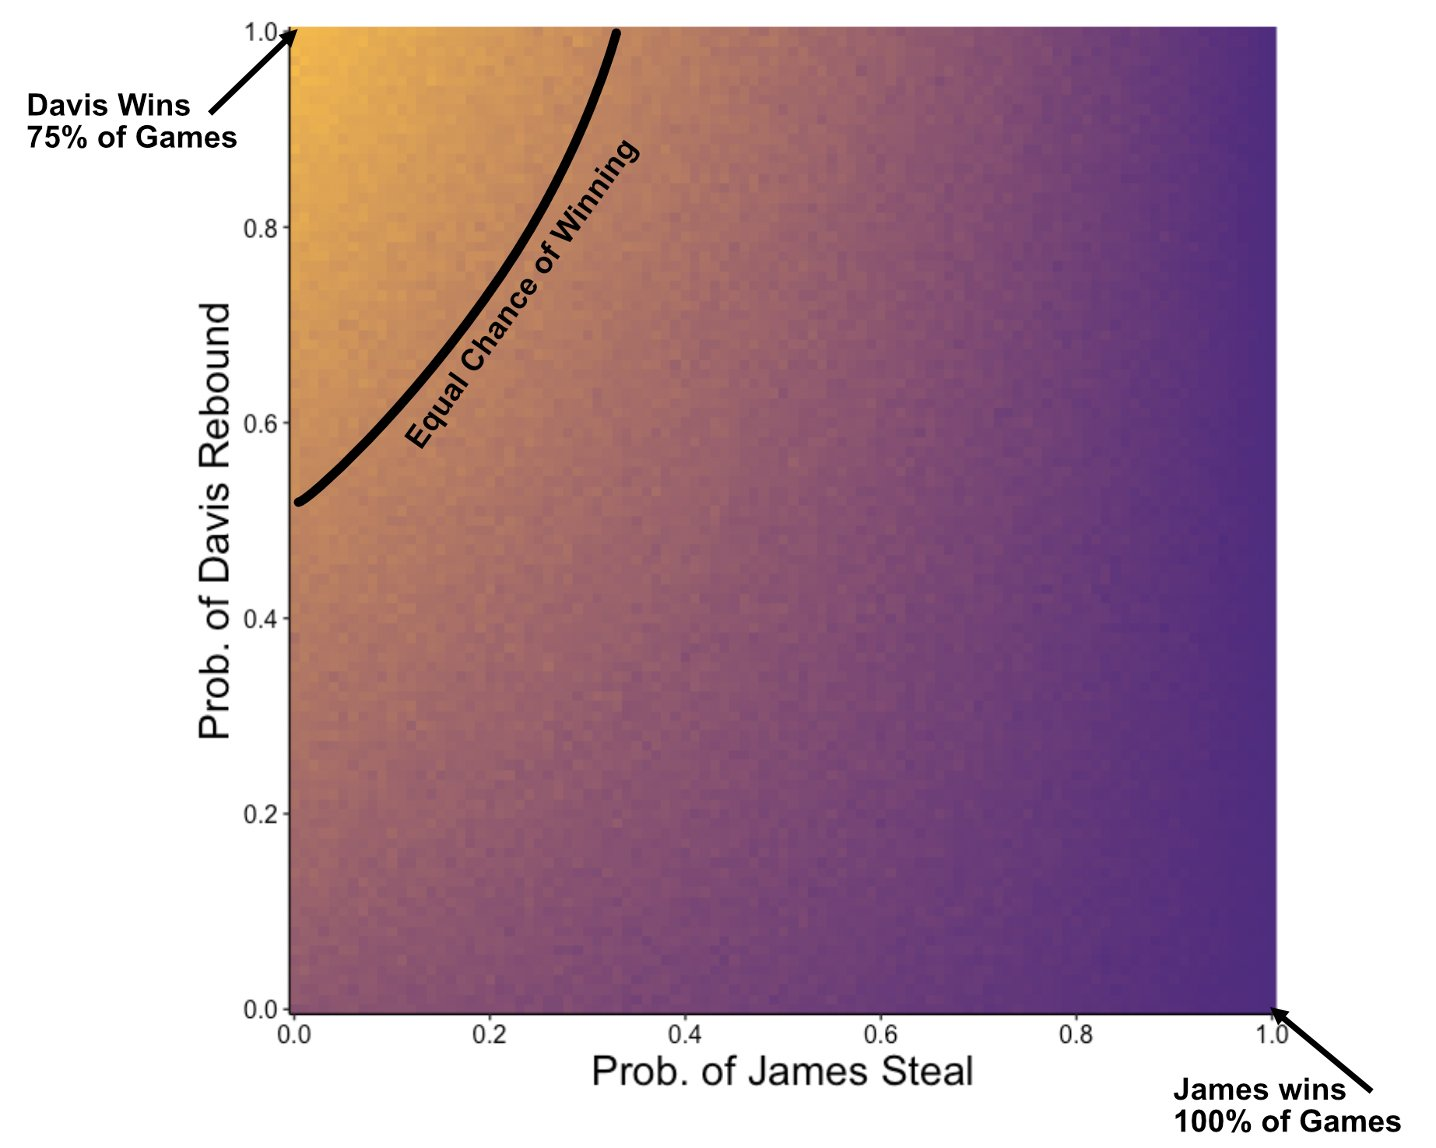 Probability of a James victory as a function of James's steal probability and Davis's rebound probability. The black curve shows where James and Davis have equal chances of winning the game.